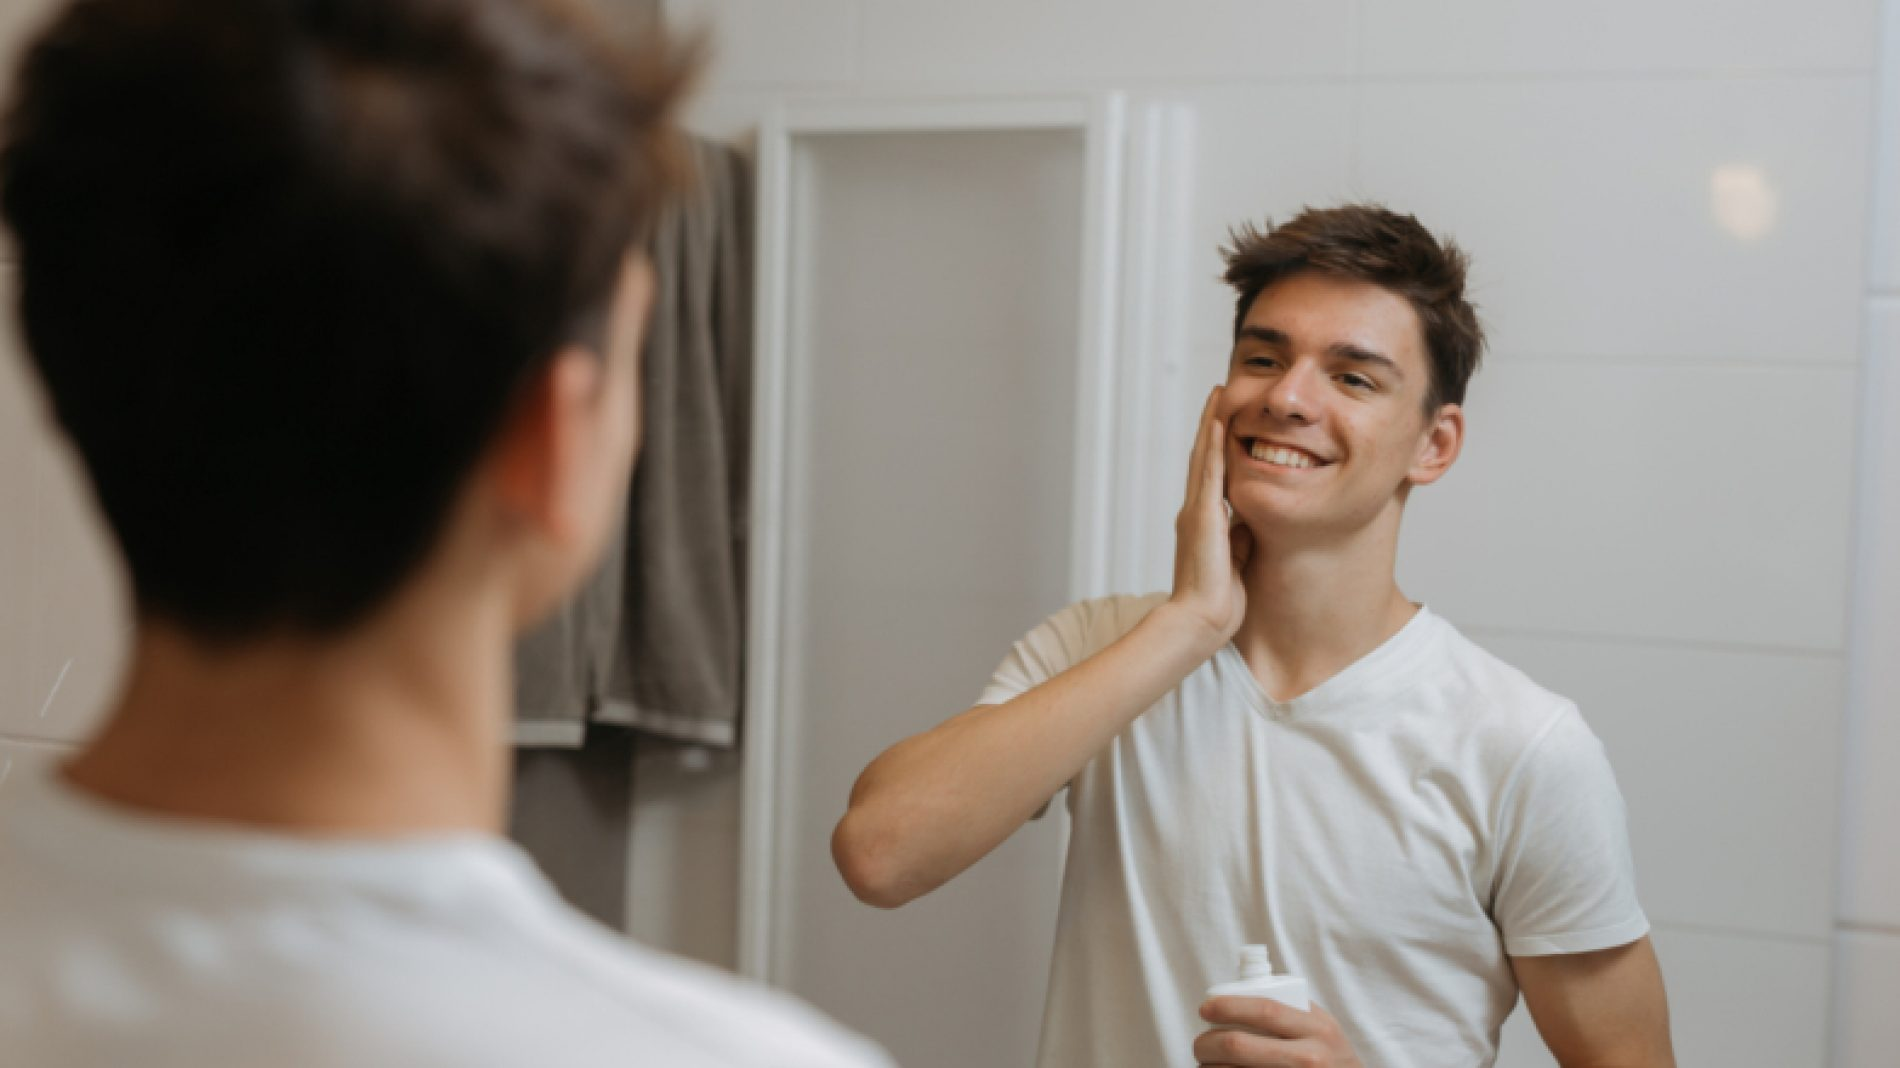 learning_to_shave-ENlAWJ